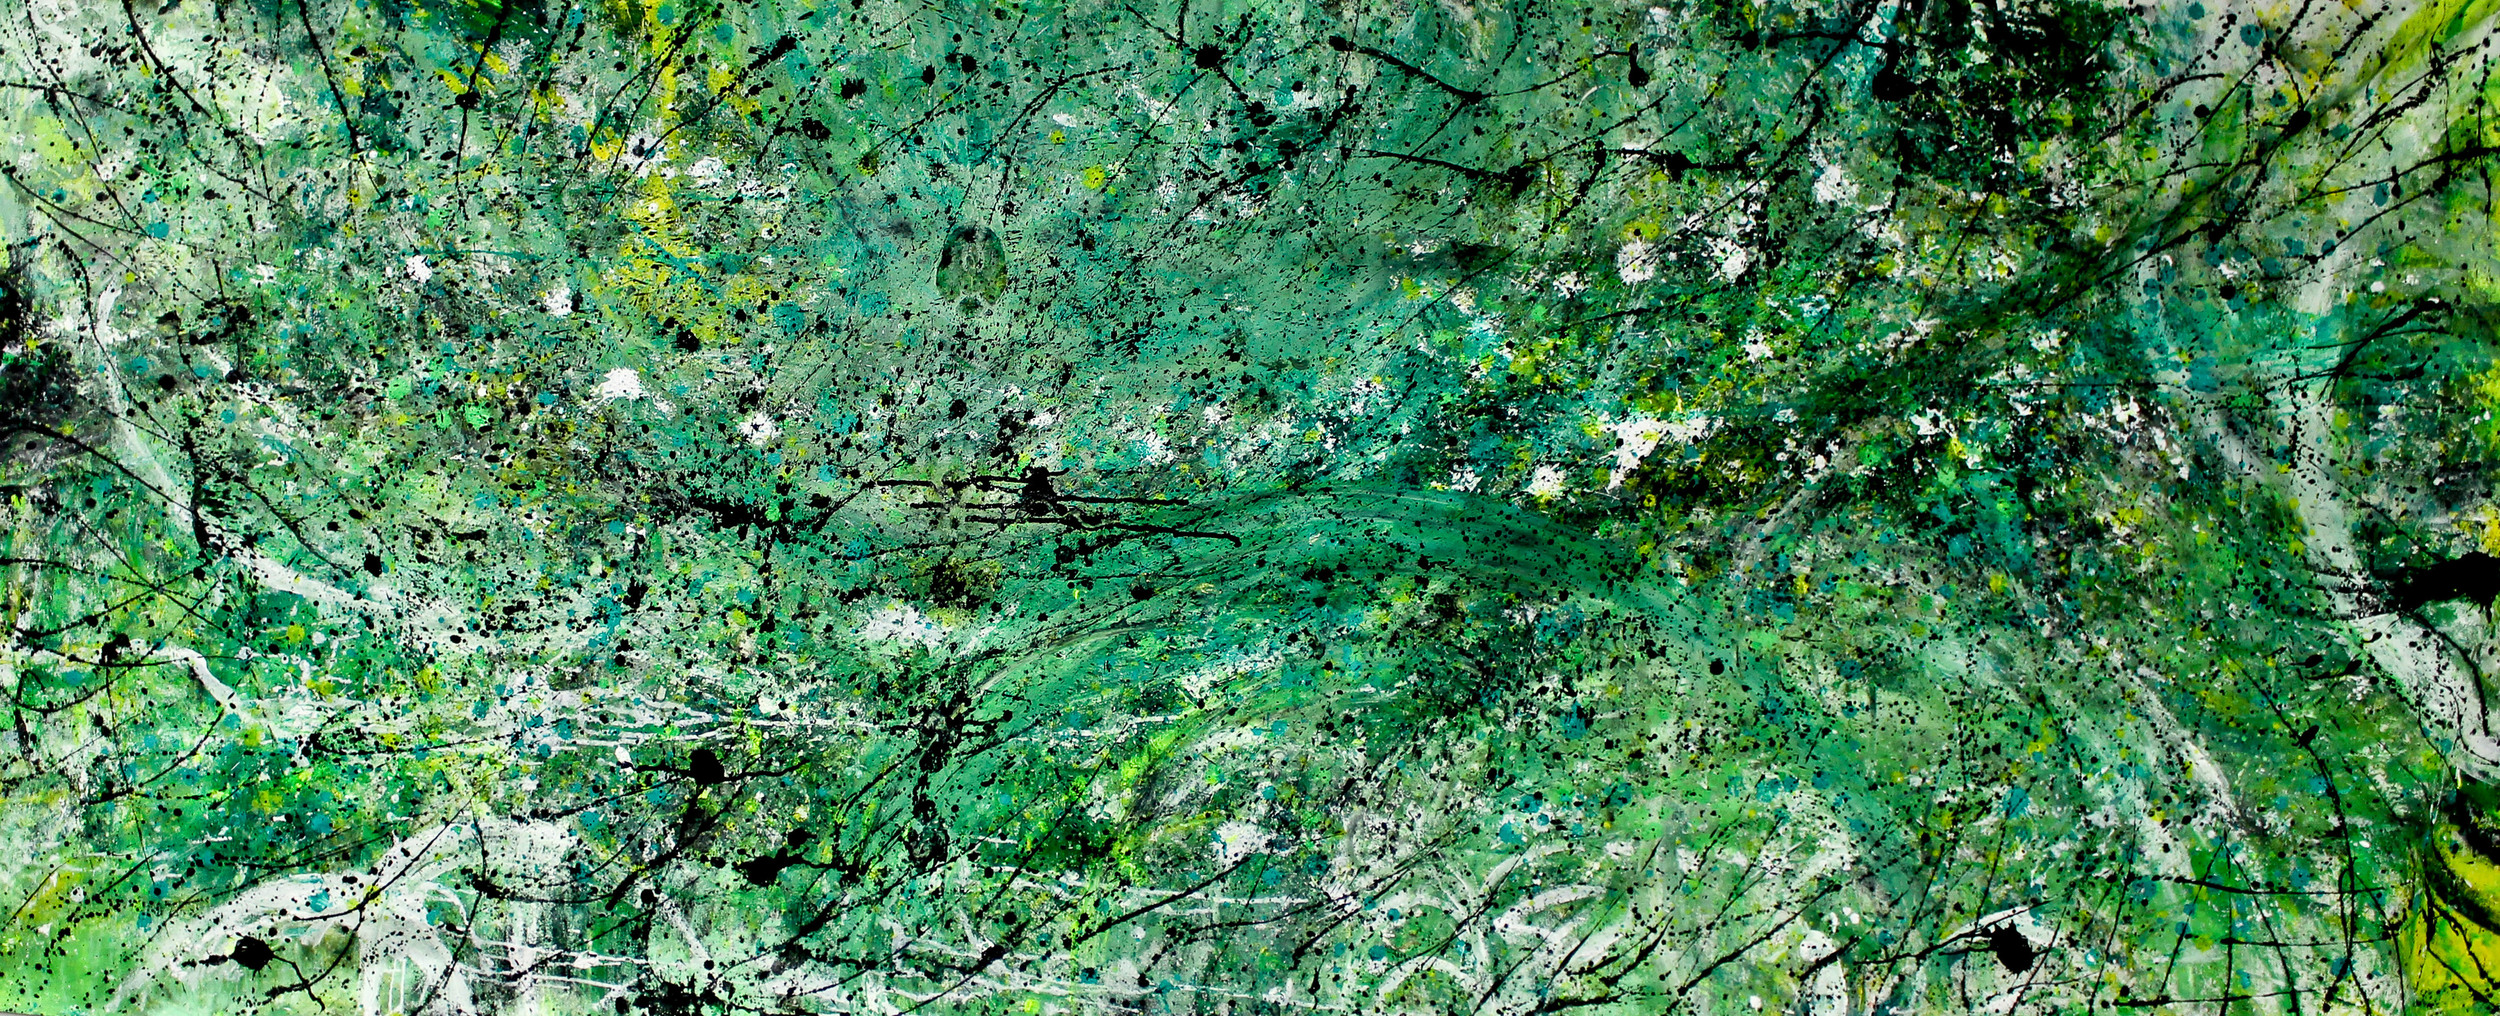 Untitled - 47″ x 112″ - Canvas, Acrylic paint, oil pastels, textile ink paint - $199